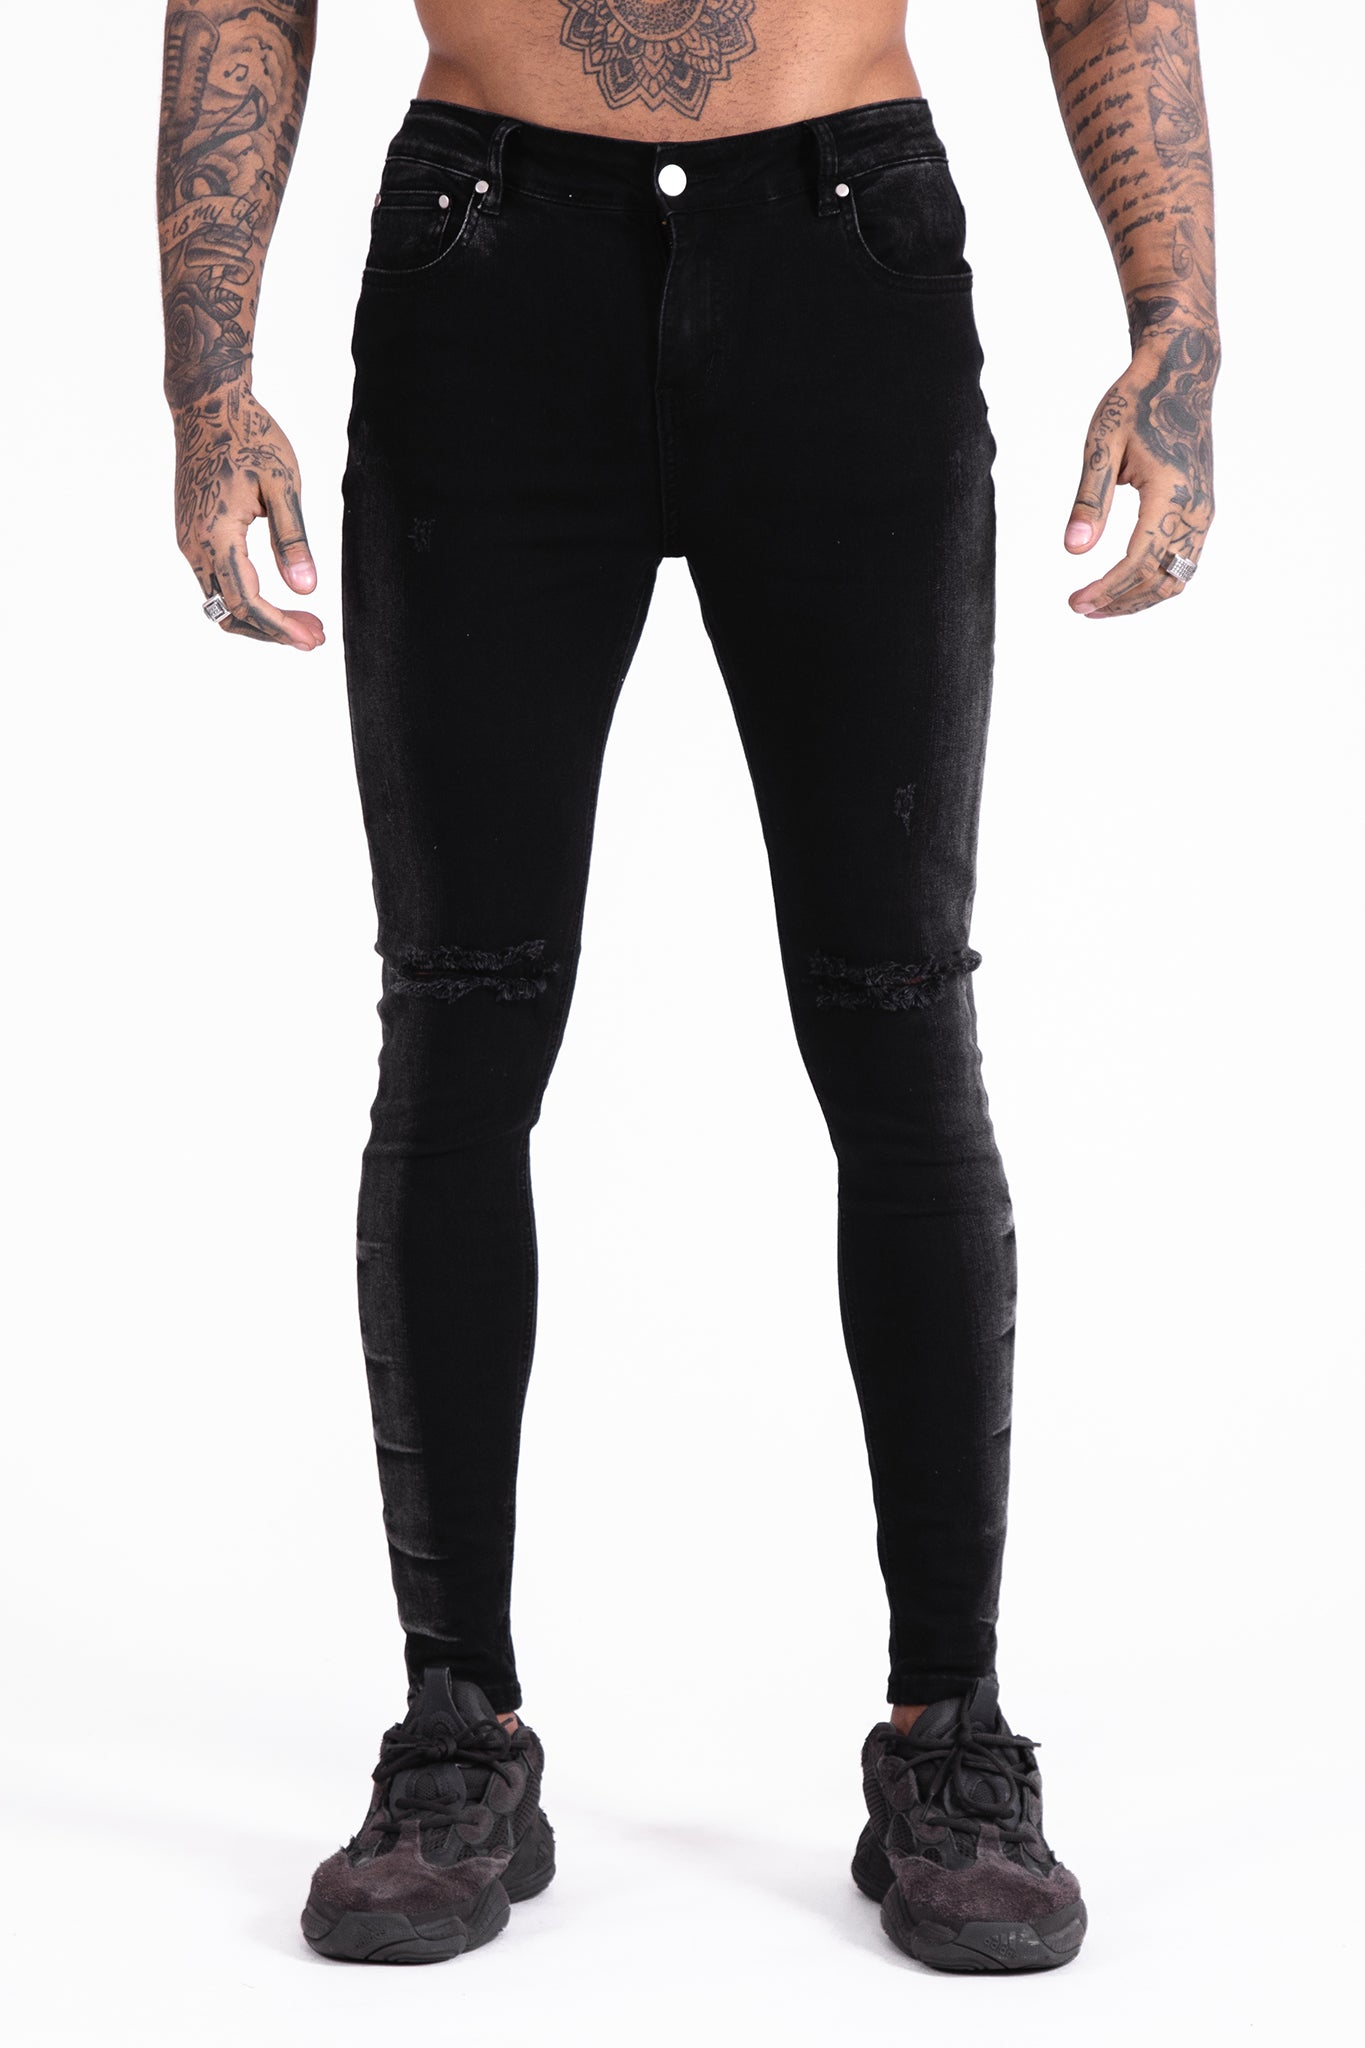 Black Faded Jeans - Illusion Attire